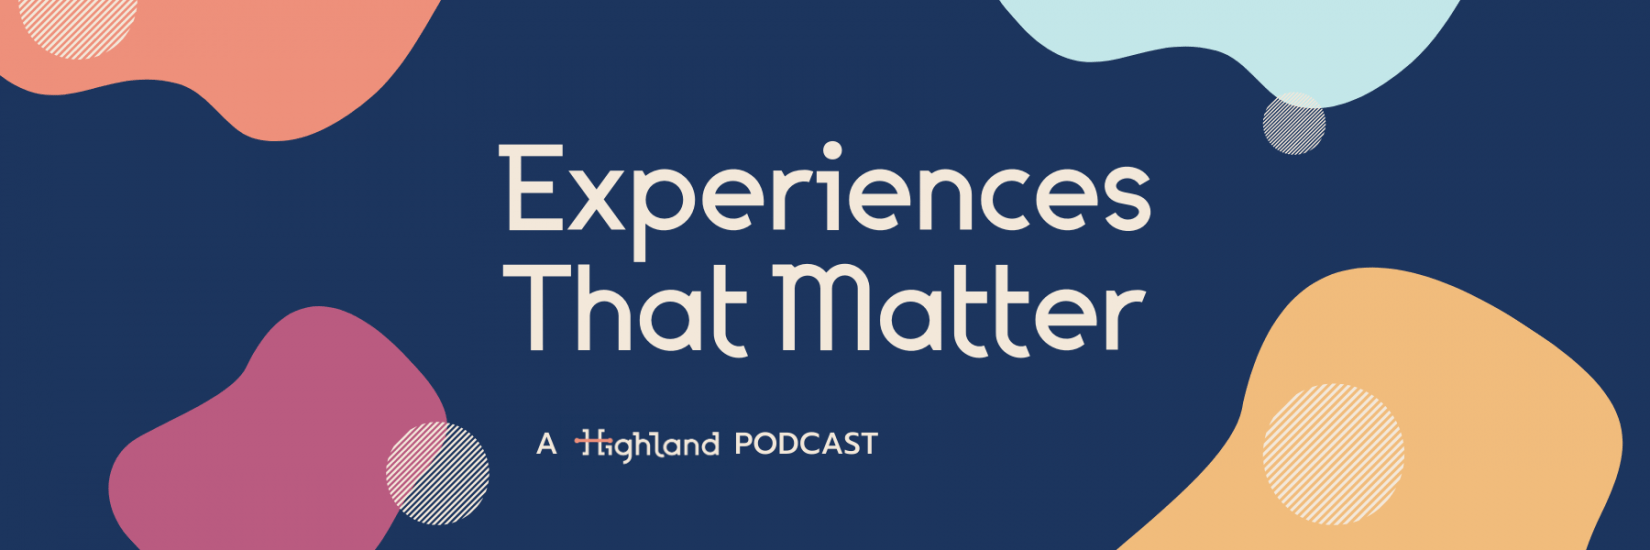 The Experiences That Matter Podcast logo with organic shapes in Highland's brand colors moving in the corners of the screen